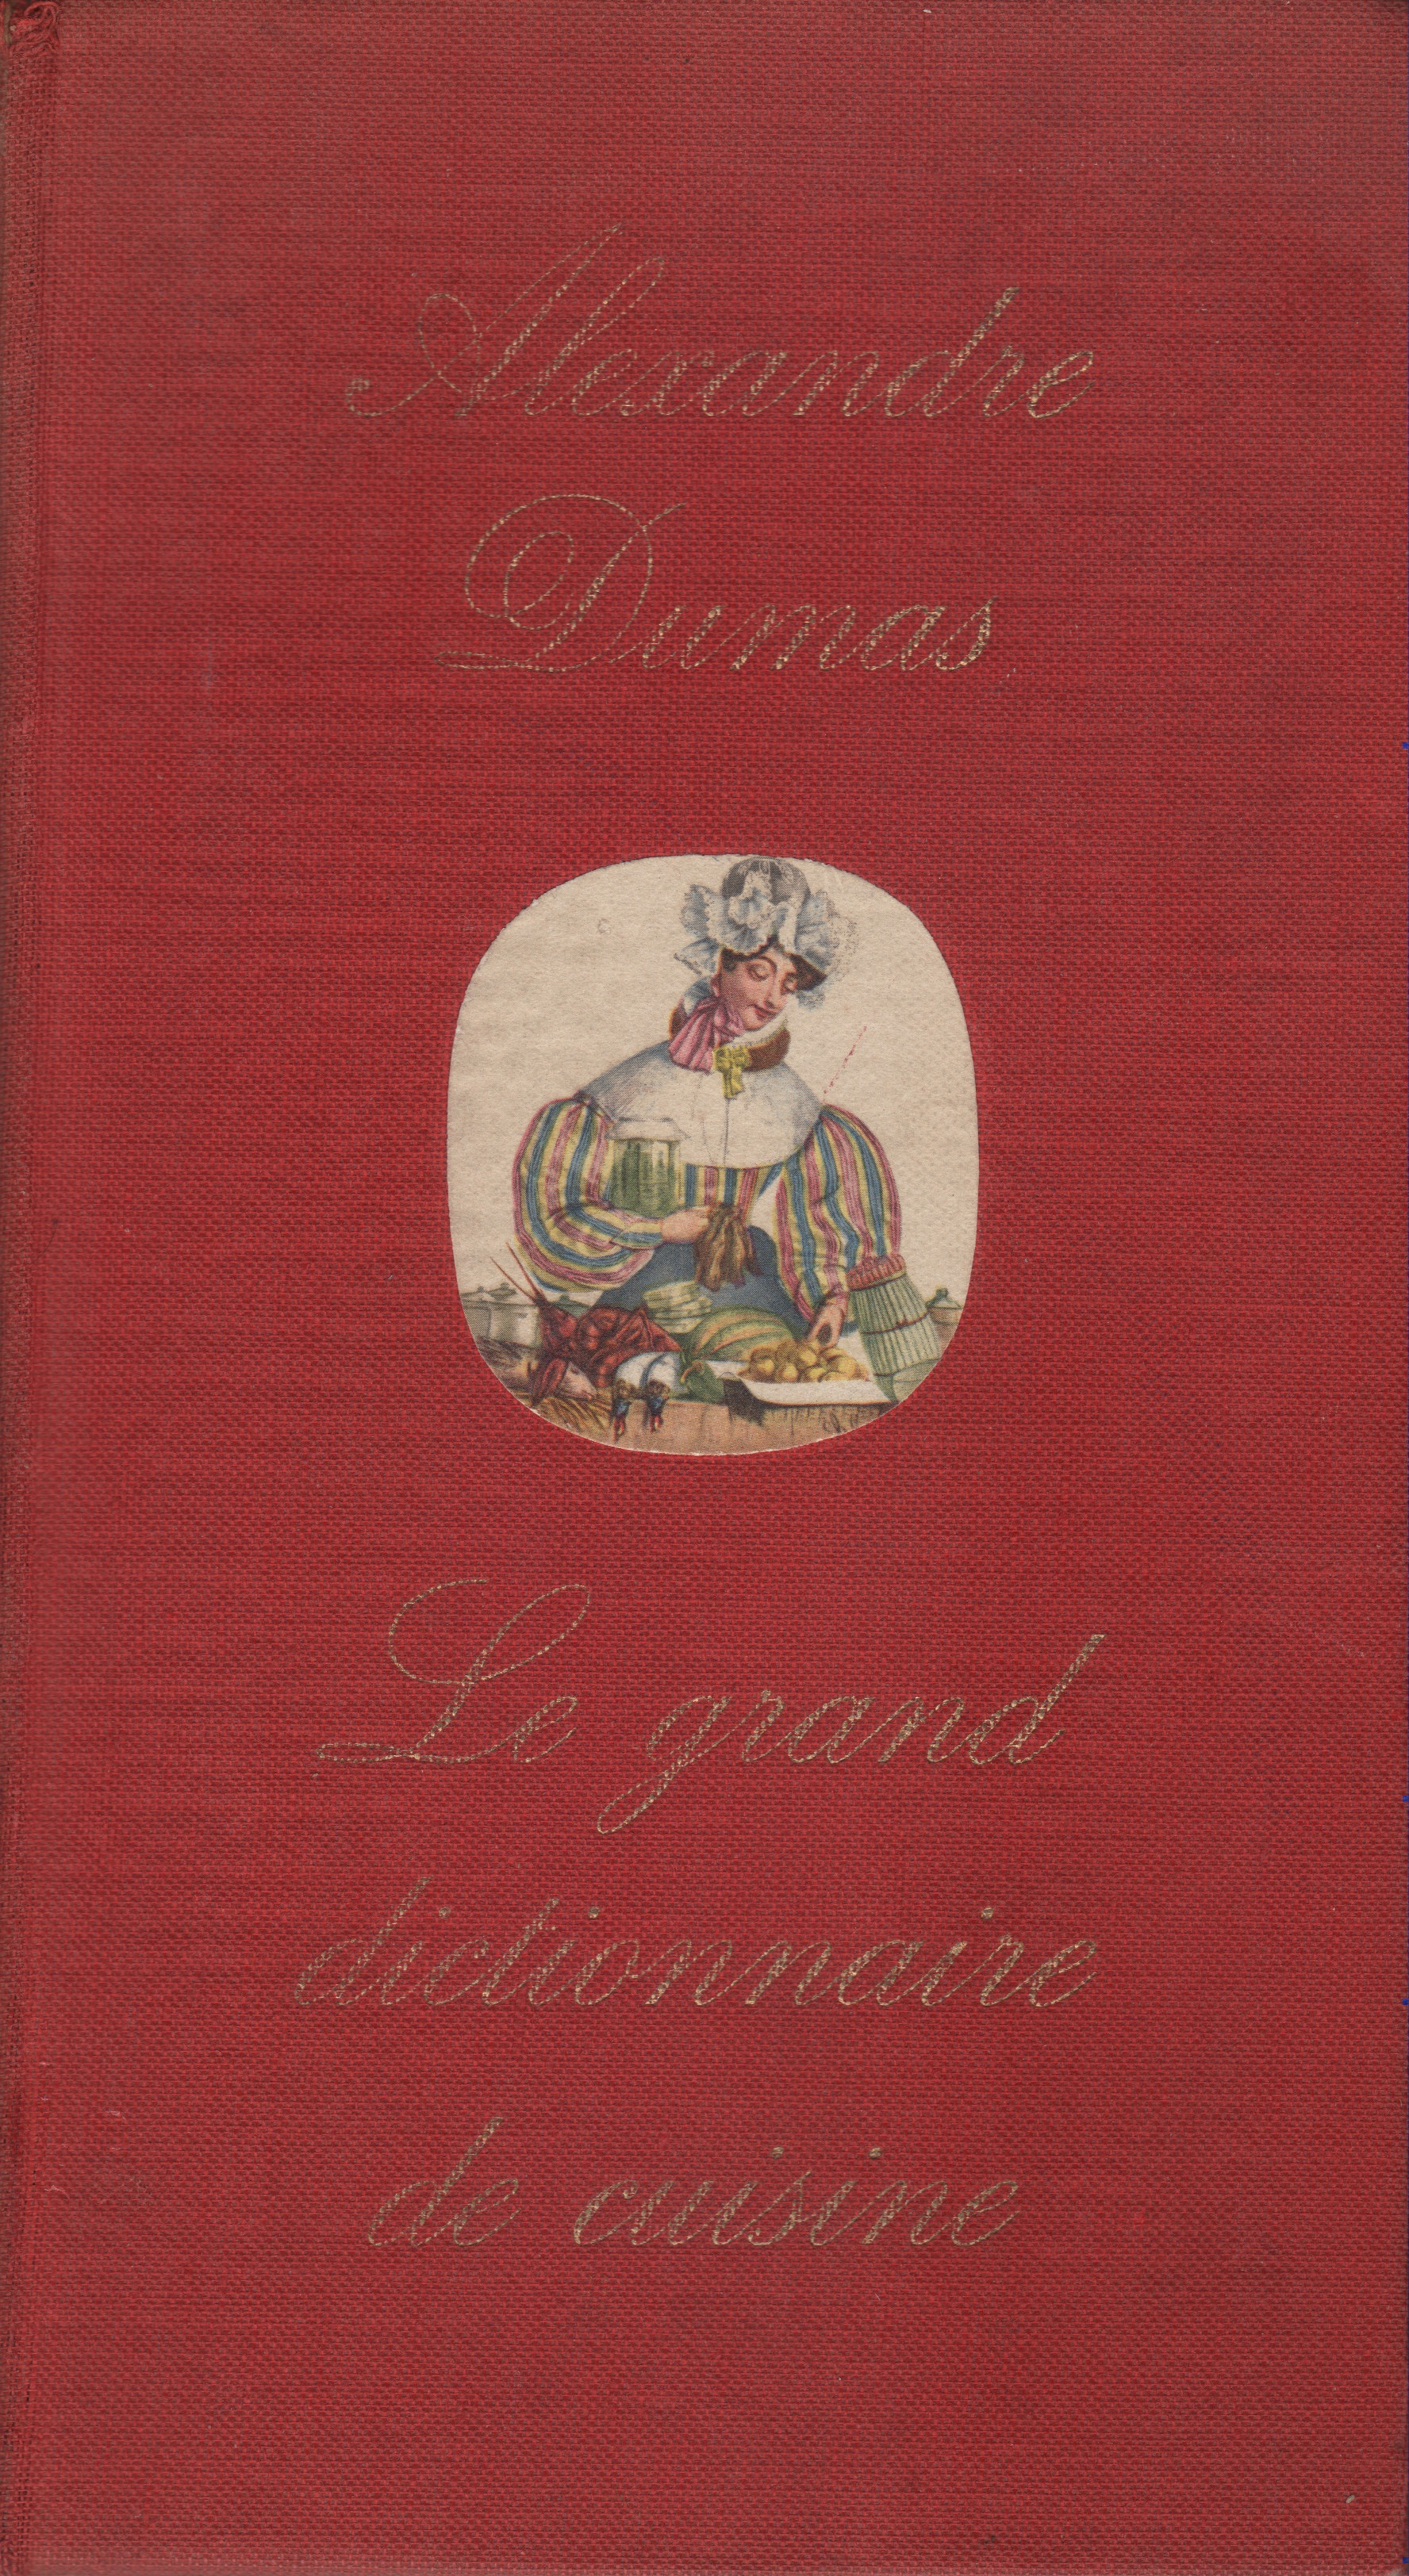 Milanais for Alexandre dumas grand dictionnaire de cuisine